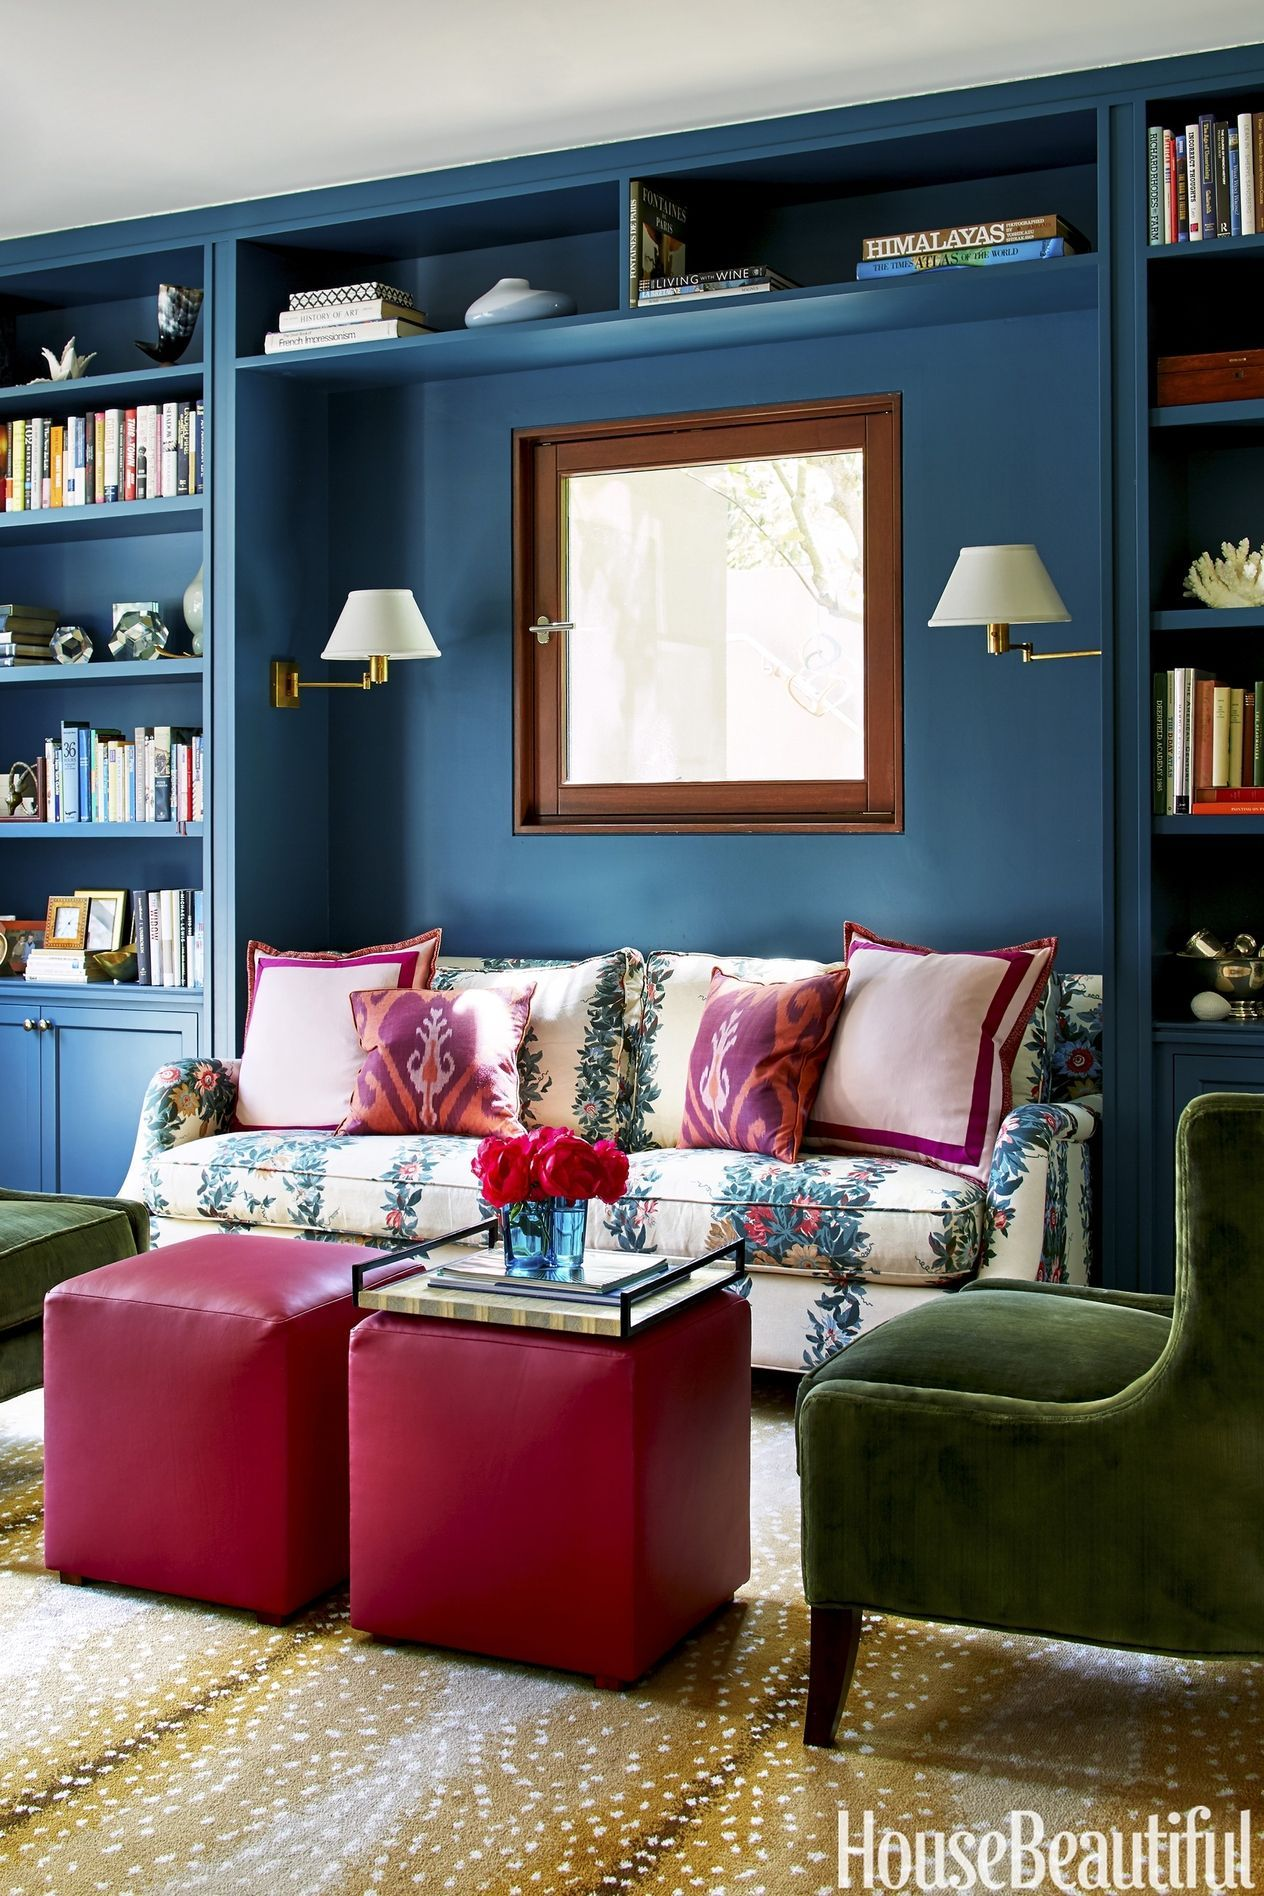 Excellent Design Ideas For Small Living Room Gallery